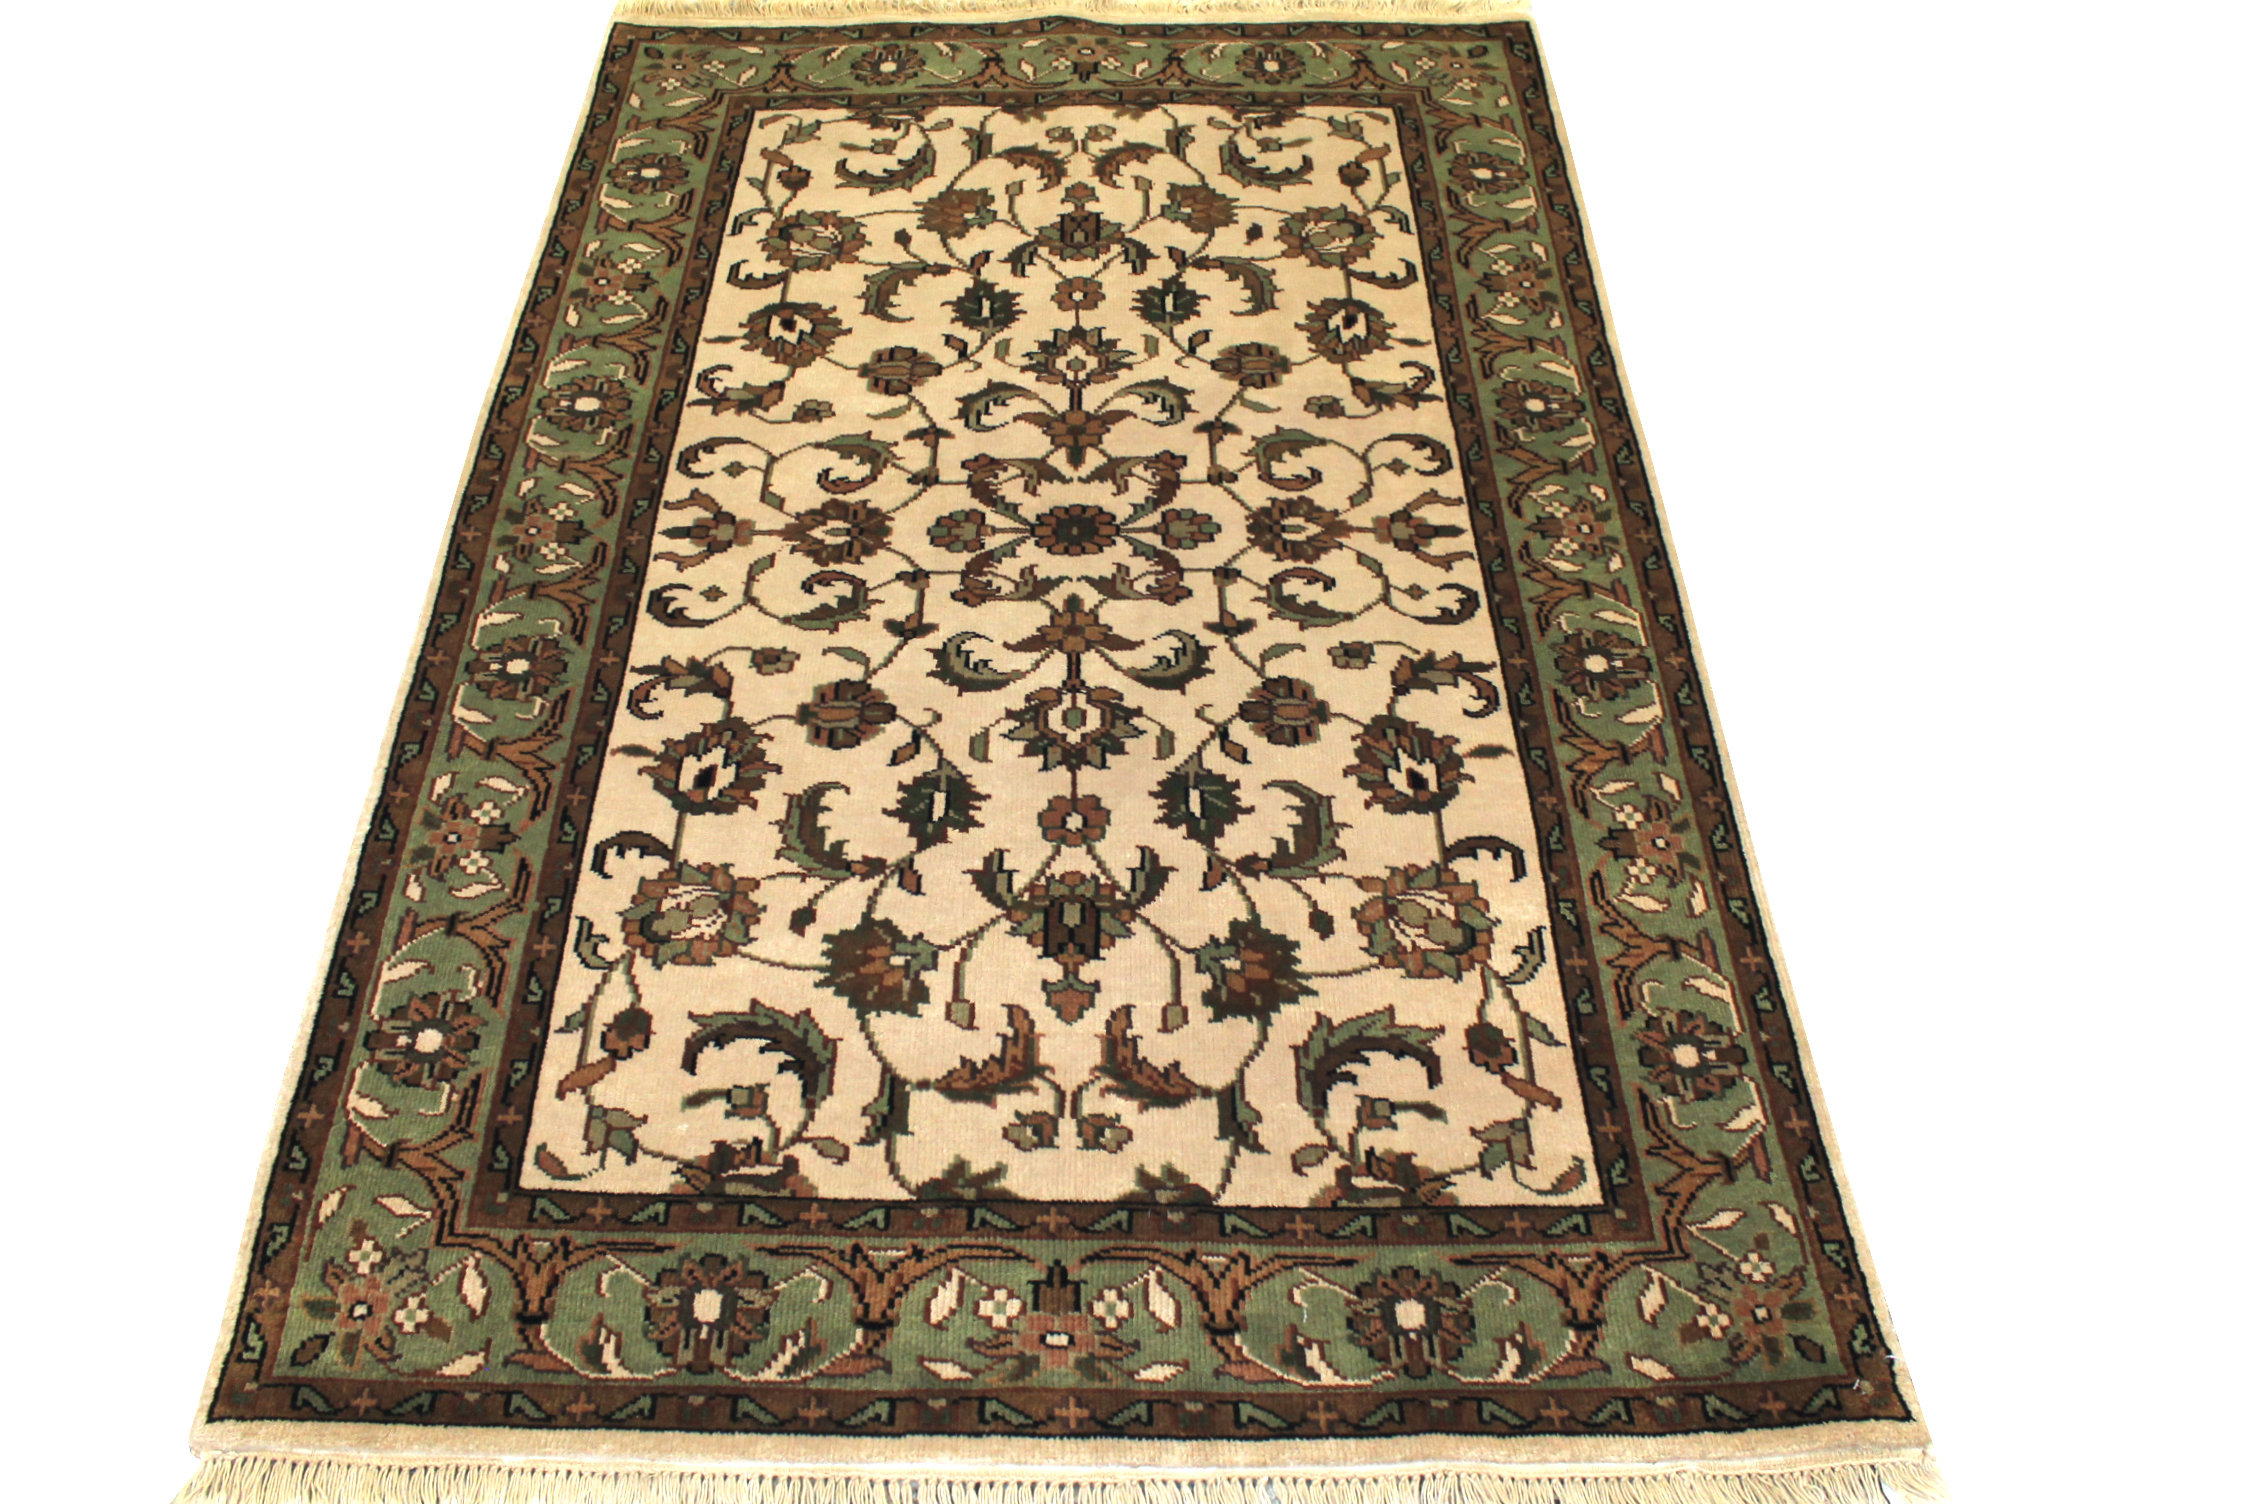 4x6 Traditional Hand Knotted Wool Area Rug - MR0043